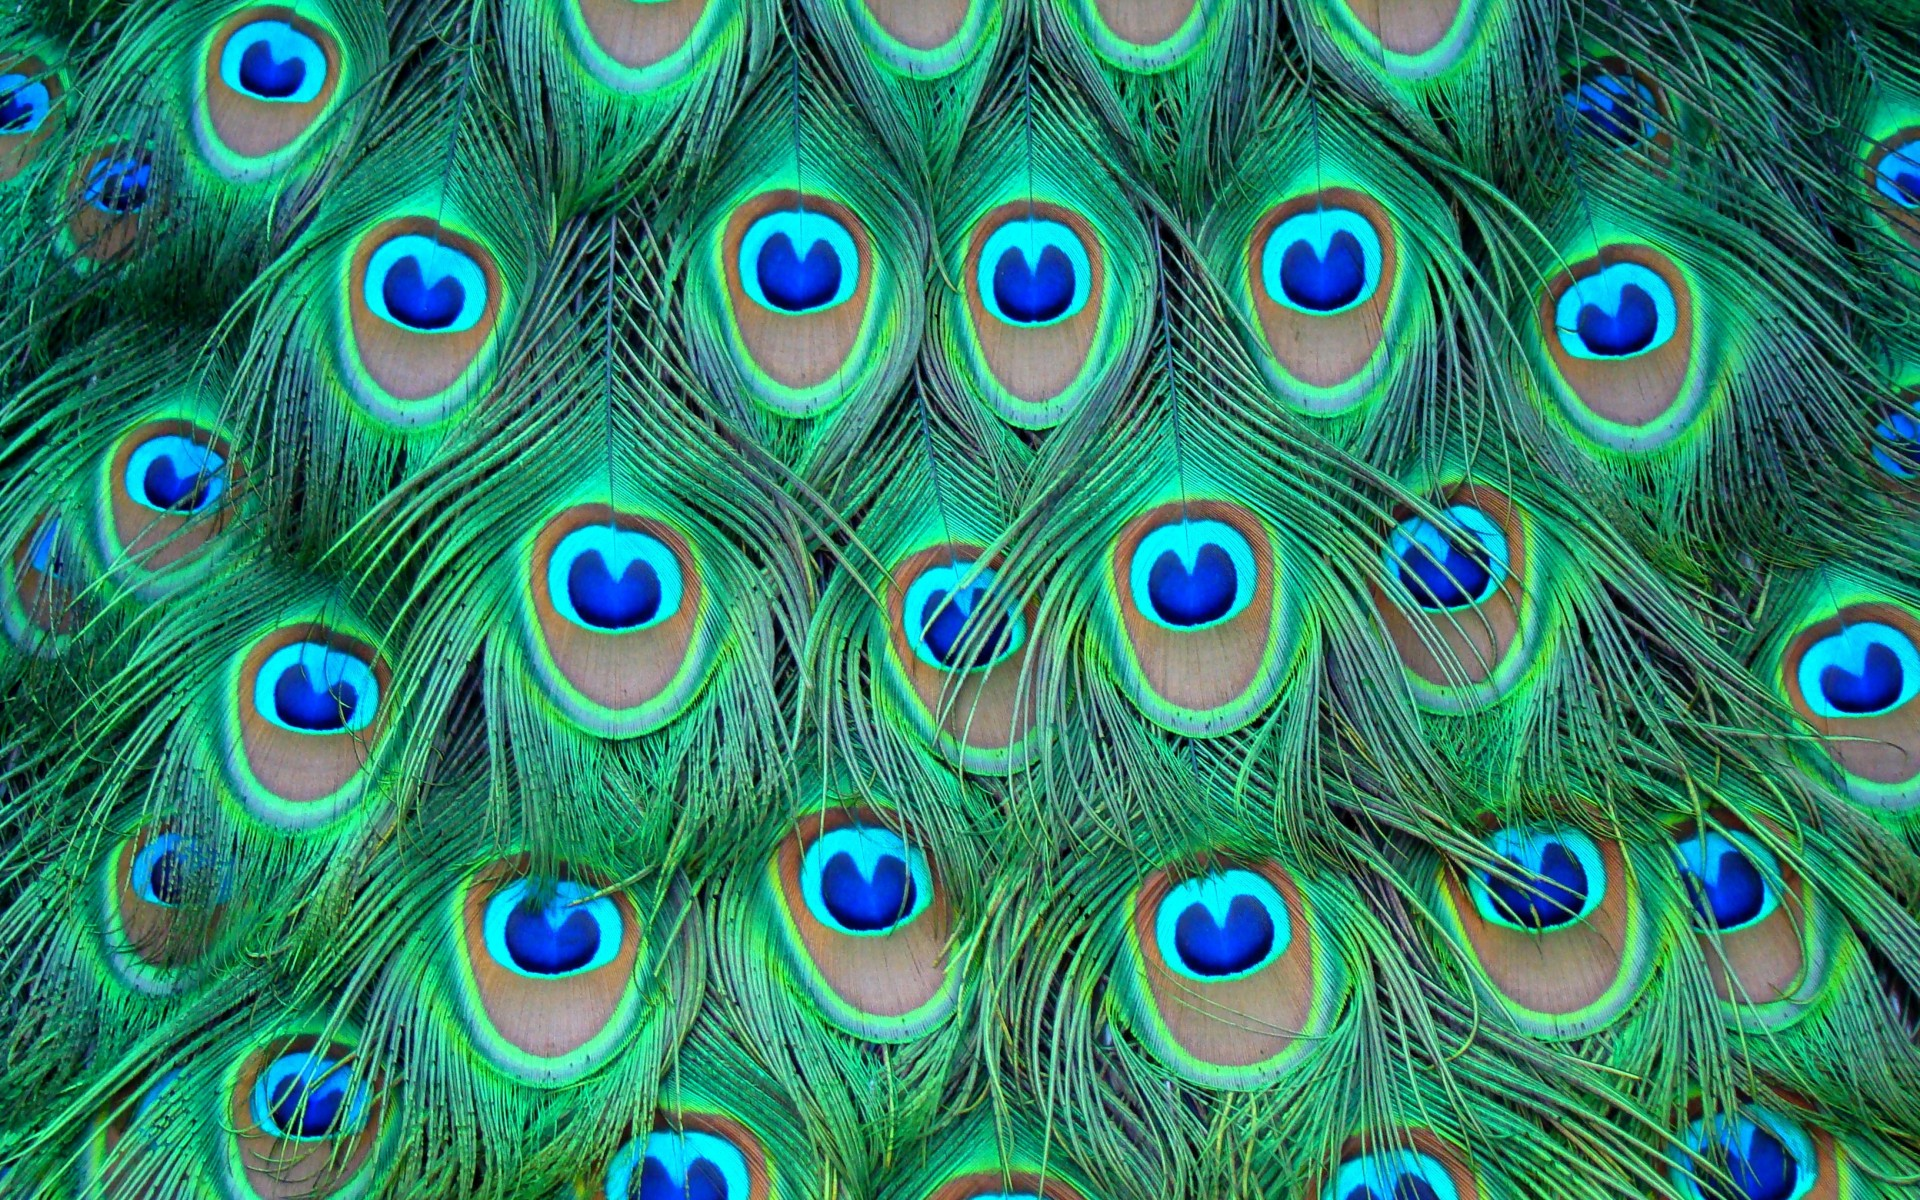 Wallpaper Details. File Name: Peacock Feather ...